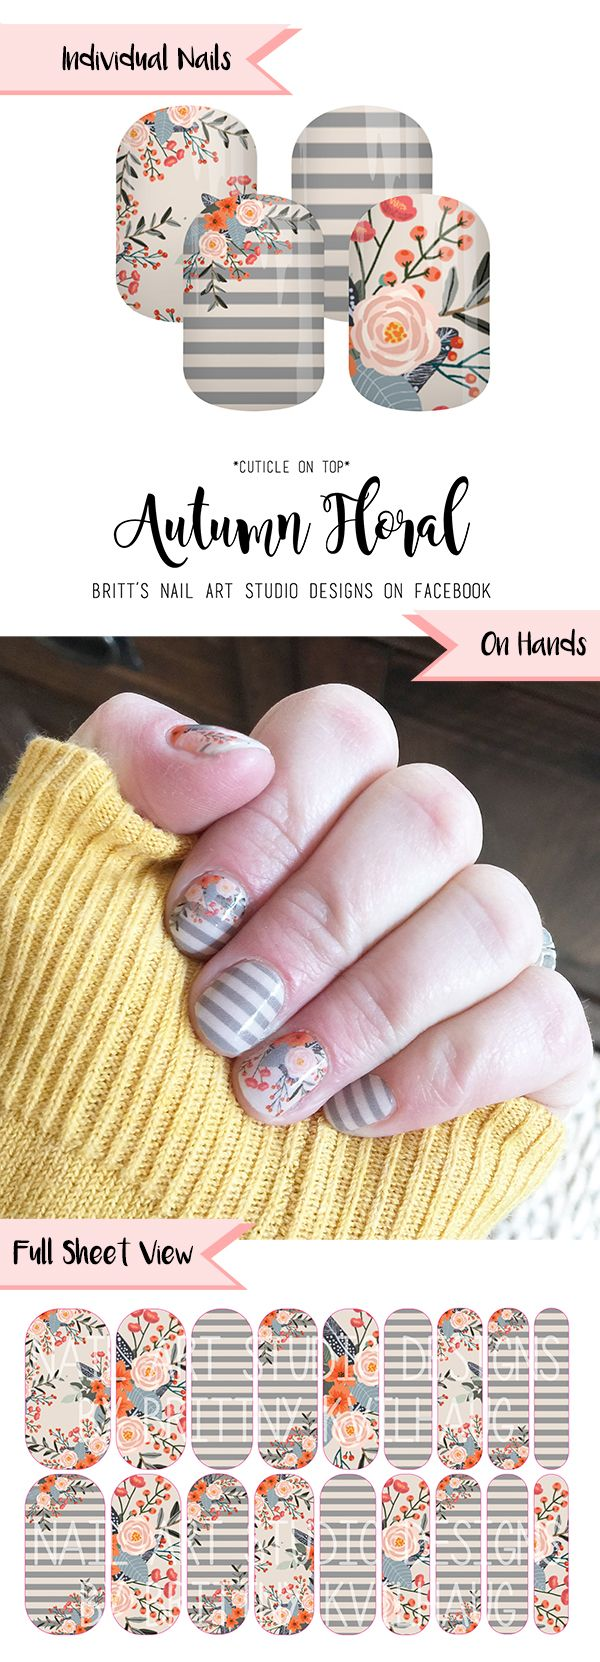 Autumn Floral Nail Wraps by Jamberry. These are so perfect for sitting back, relaxing, and guzzling a pumpkin spice latte. Amiright?